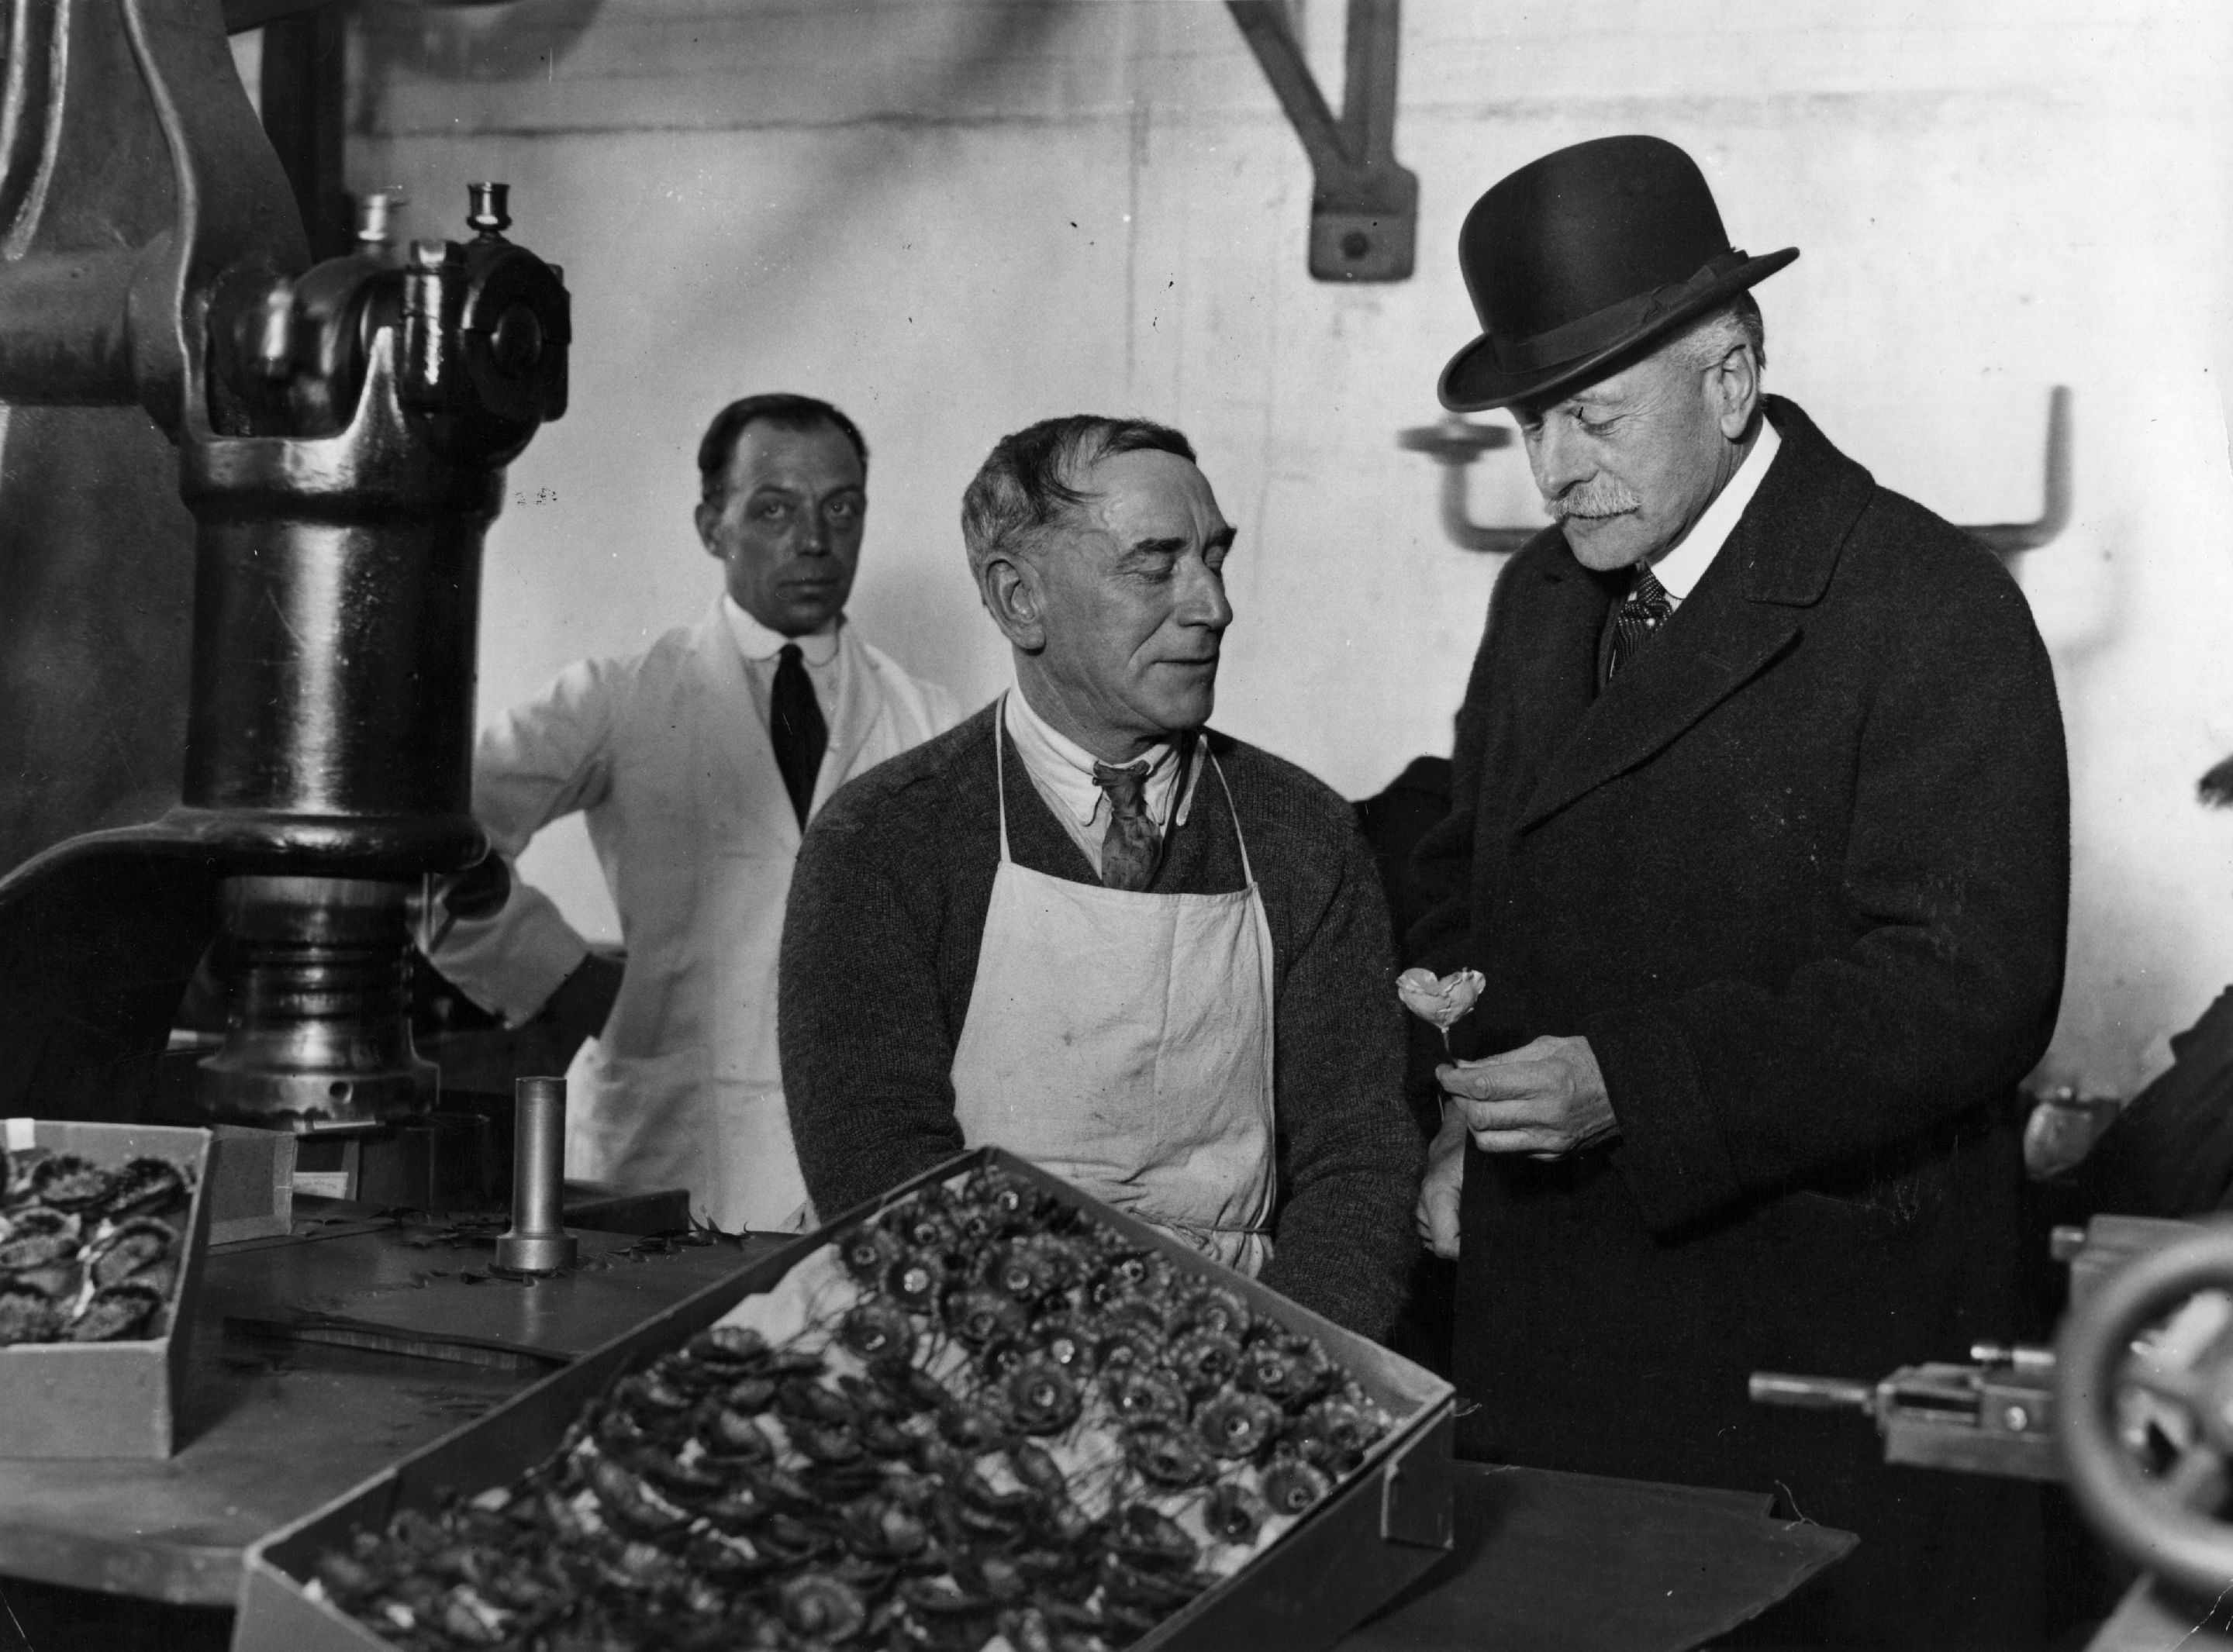 Douglas Haig (right) watches the stamping of poppies by ex-servicemen, during a visit to the British Legion poppy factory in Richmond, 22 October 1926. (Photo by Topical Press Agency/Getty Images)